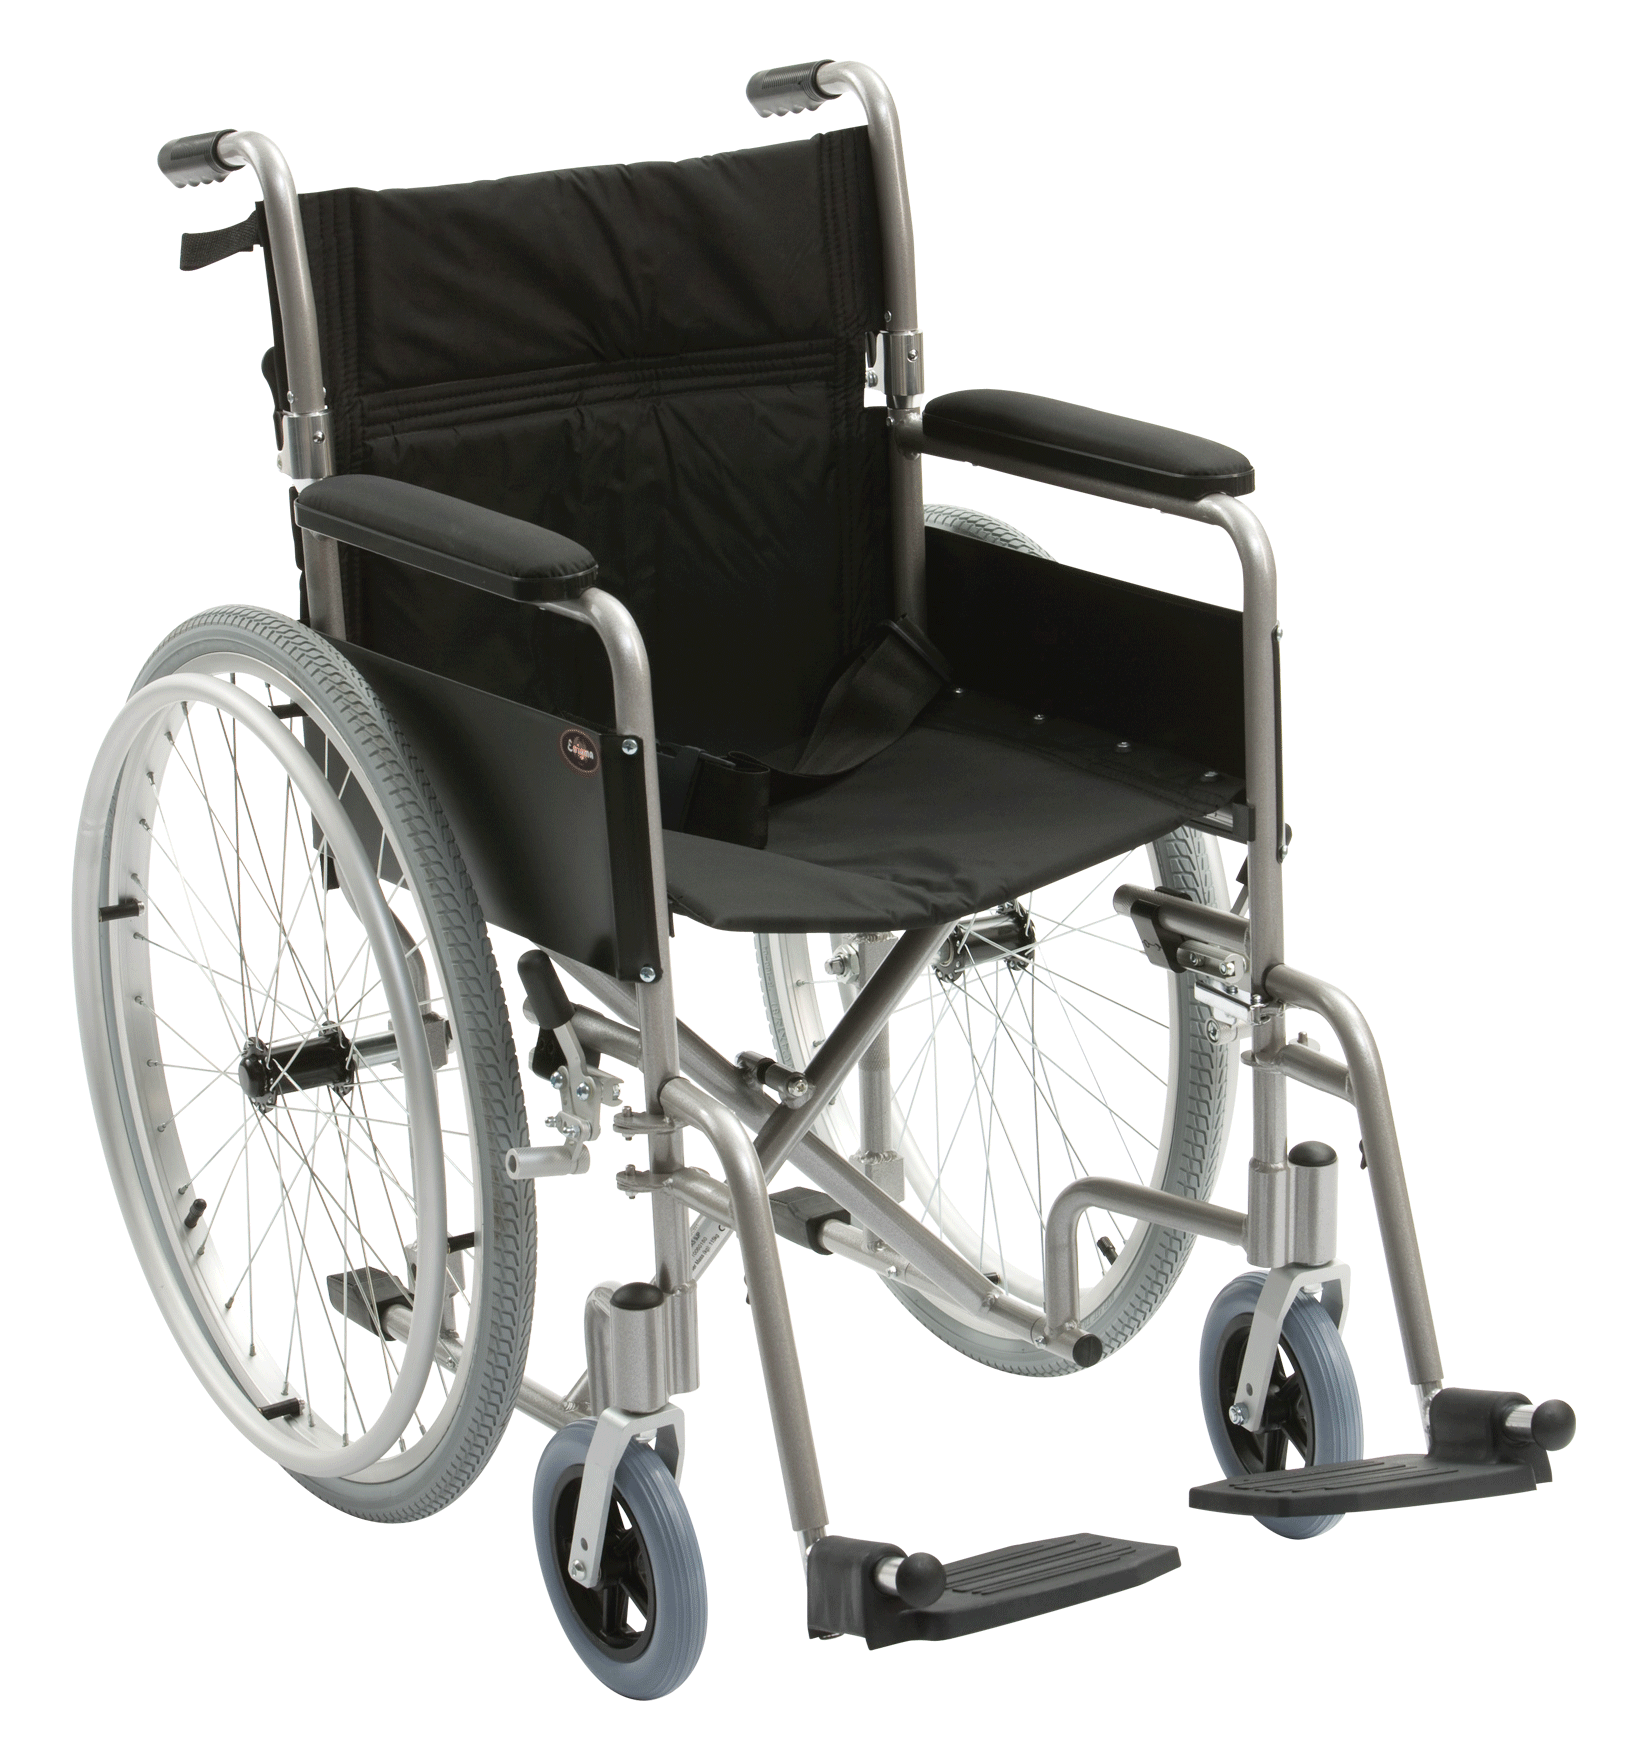 Drive - Enigma Lightweight Aluminium Wheelchair (Self Propelled) LAWC001AU by Drive